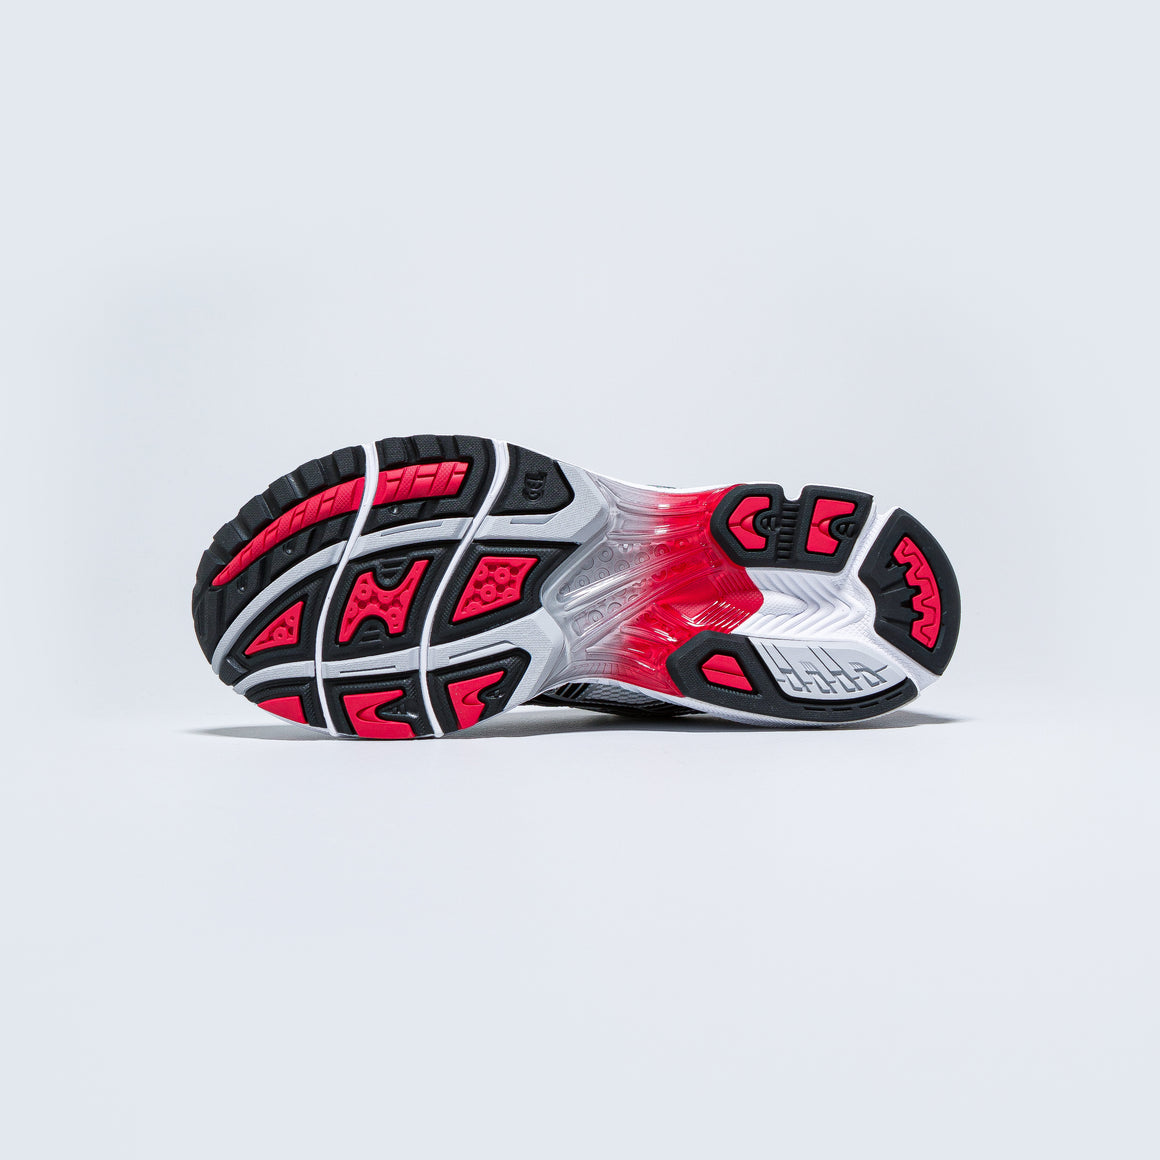 Asics - Gel-Kayano 14 - White/Classic Red - Up There